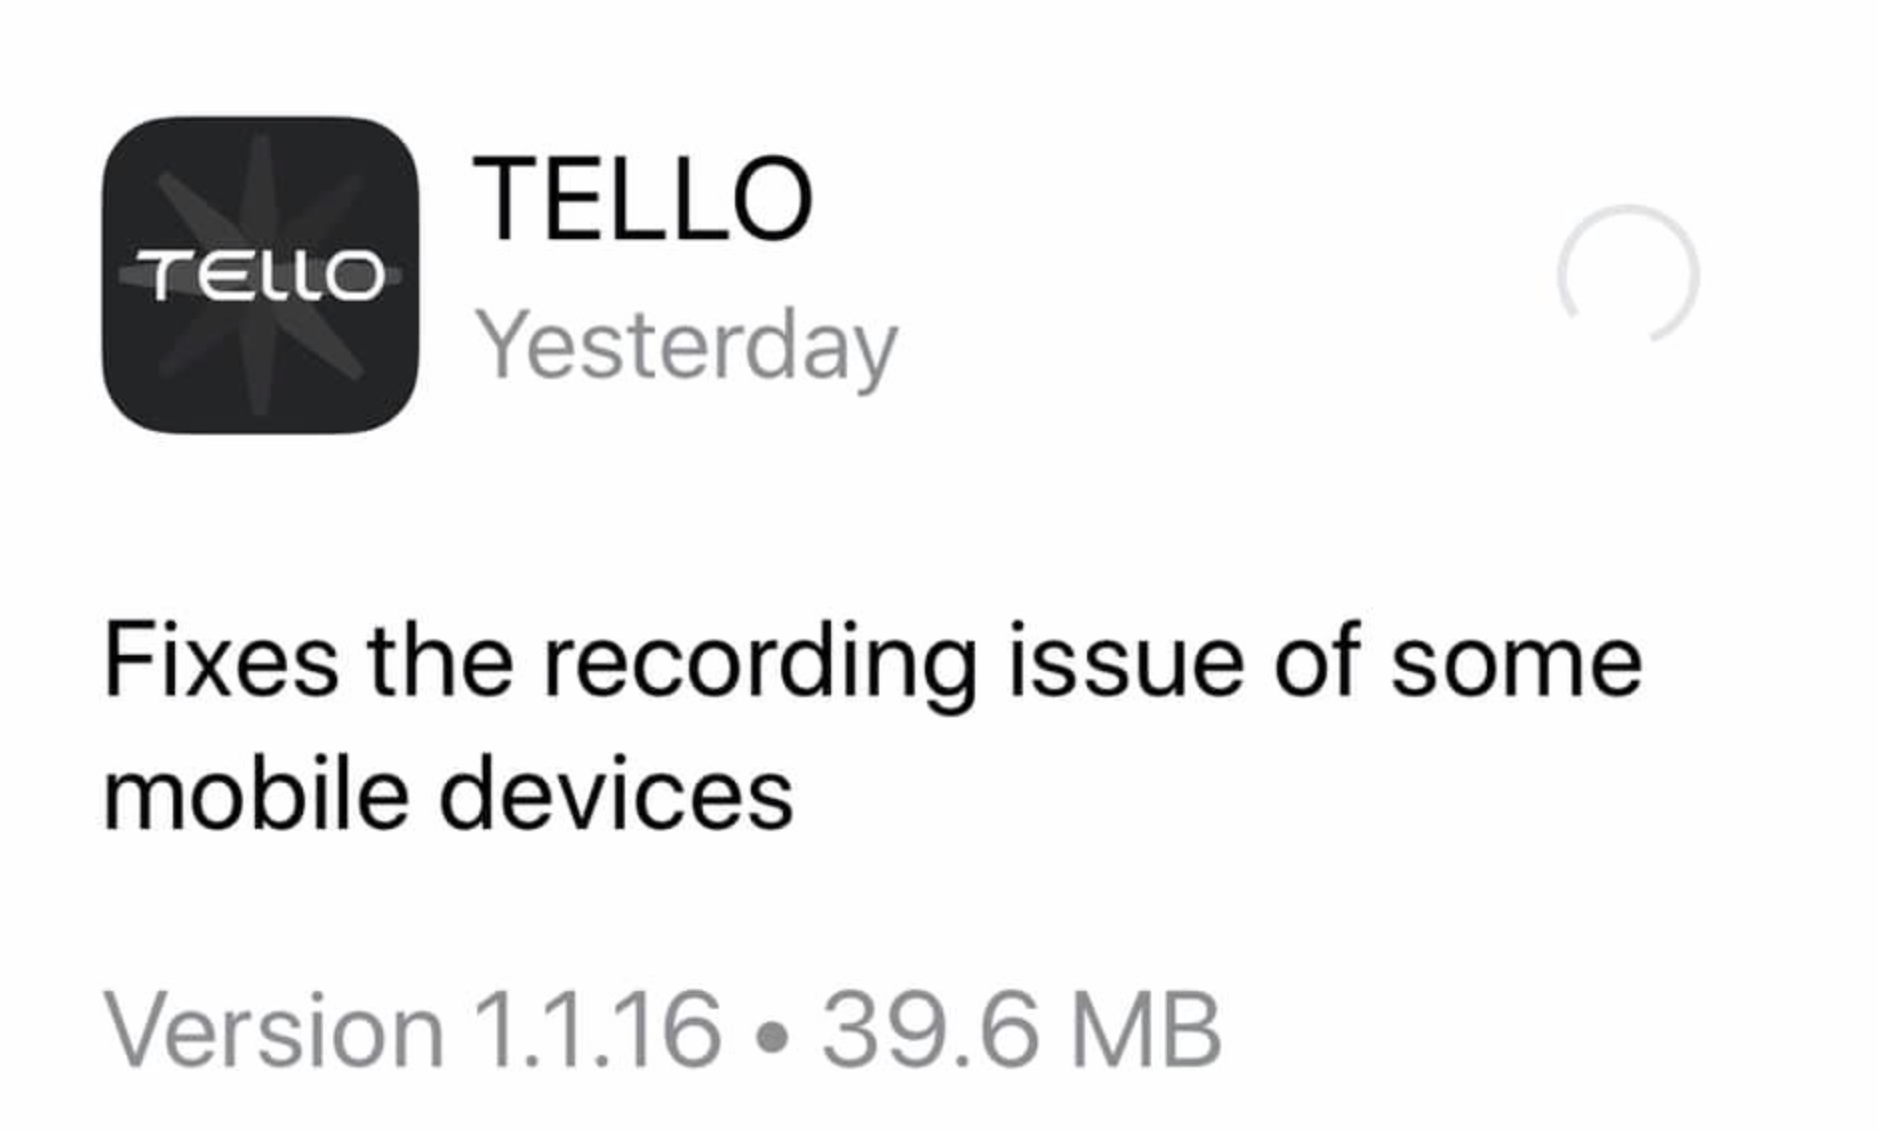 DJI Tello app for iOS updated